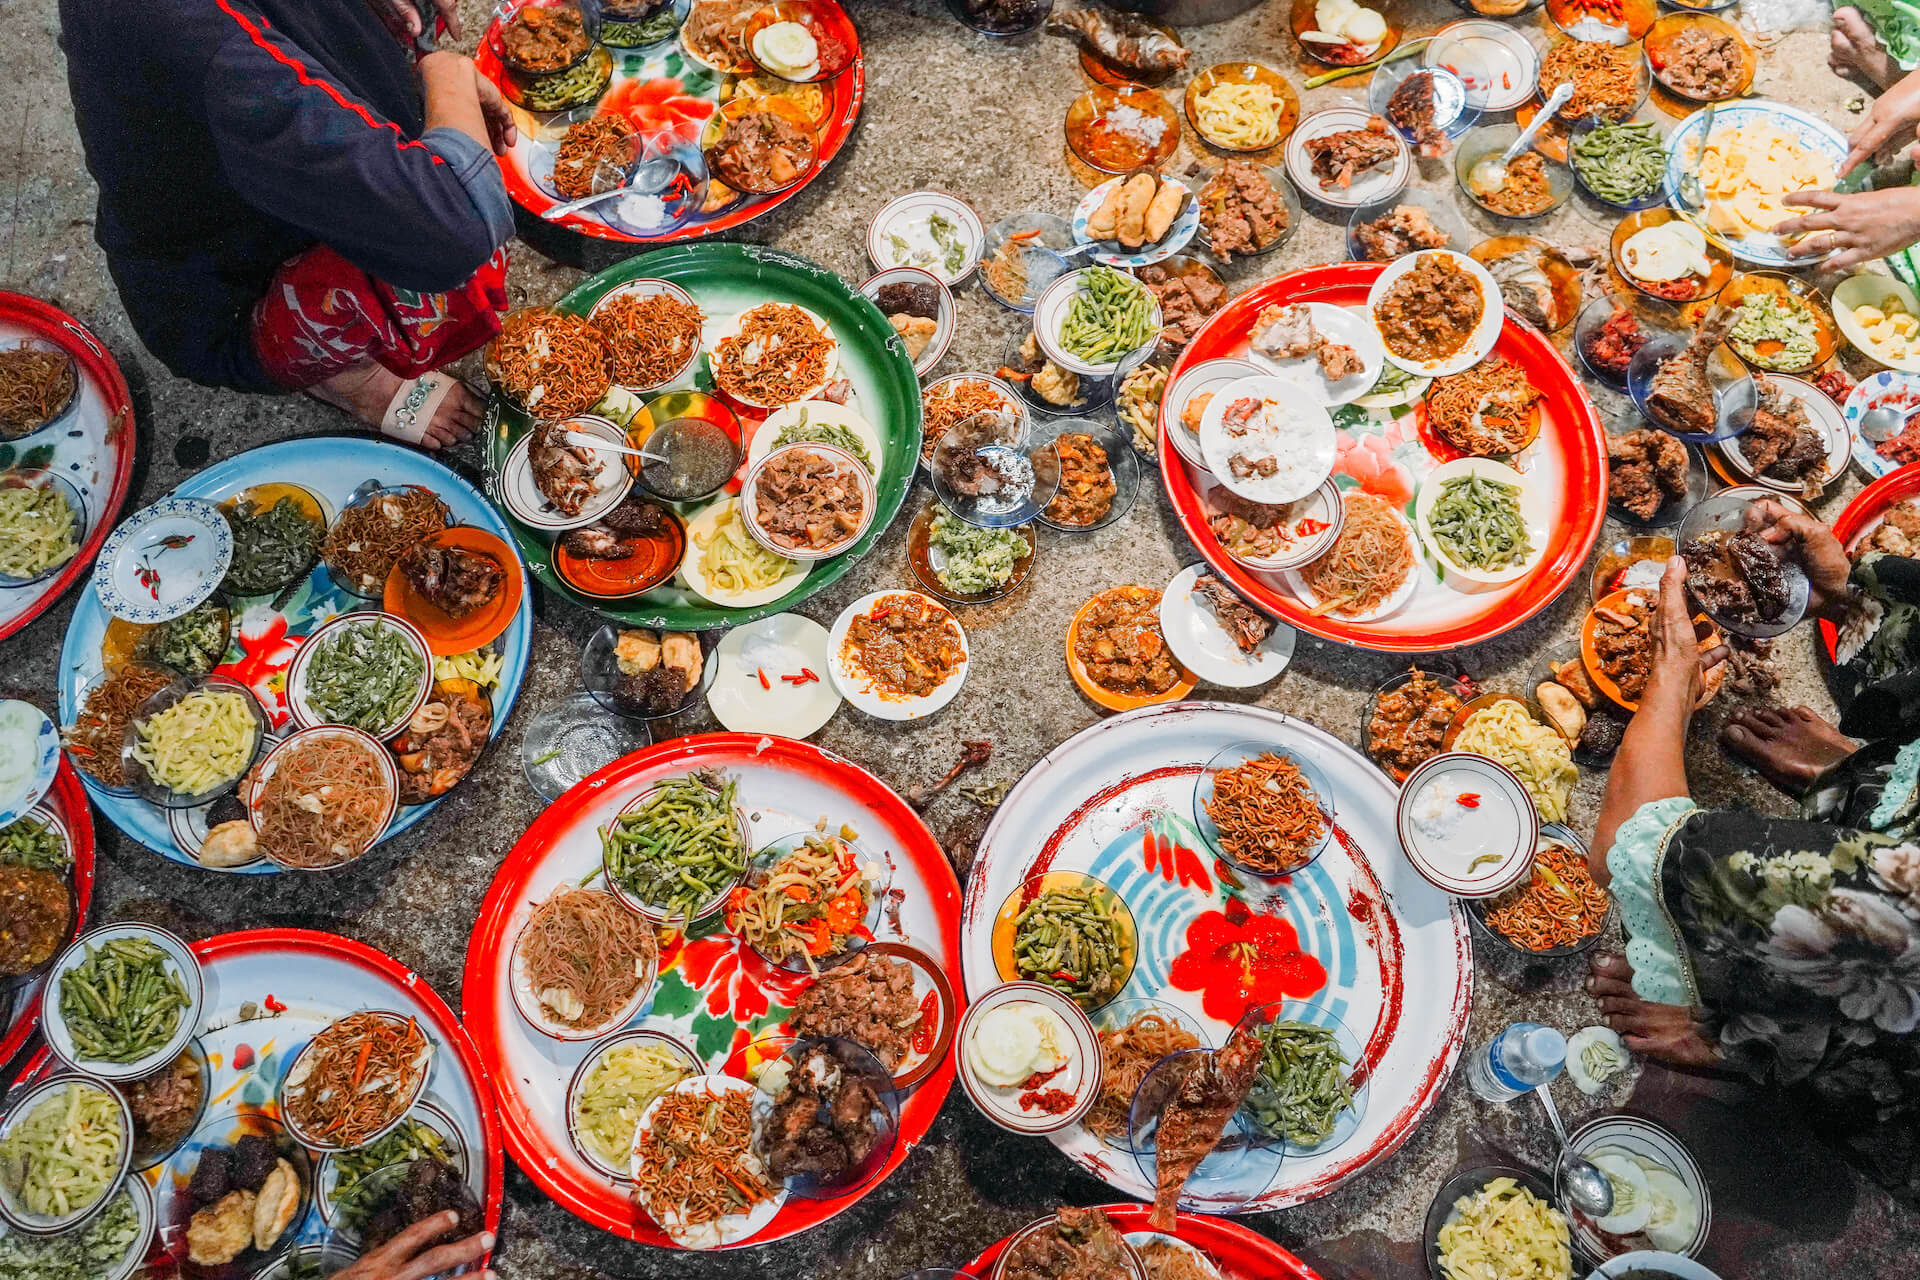 A photographer returns home to Sulu after 13 years and rediscovers the heritage of his people through food.